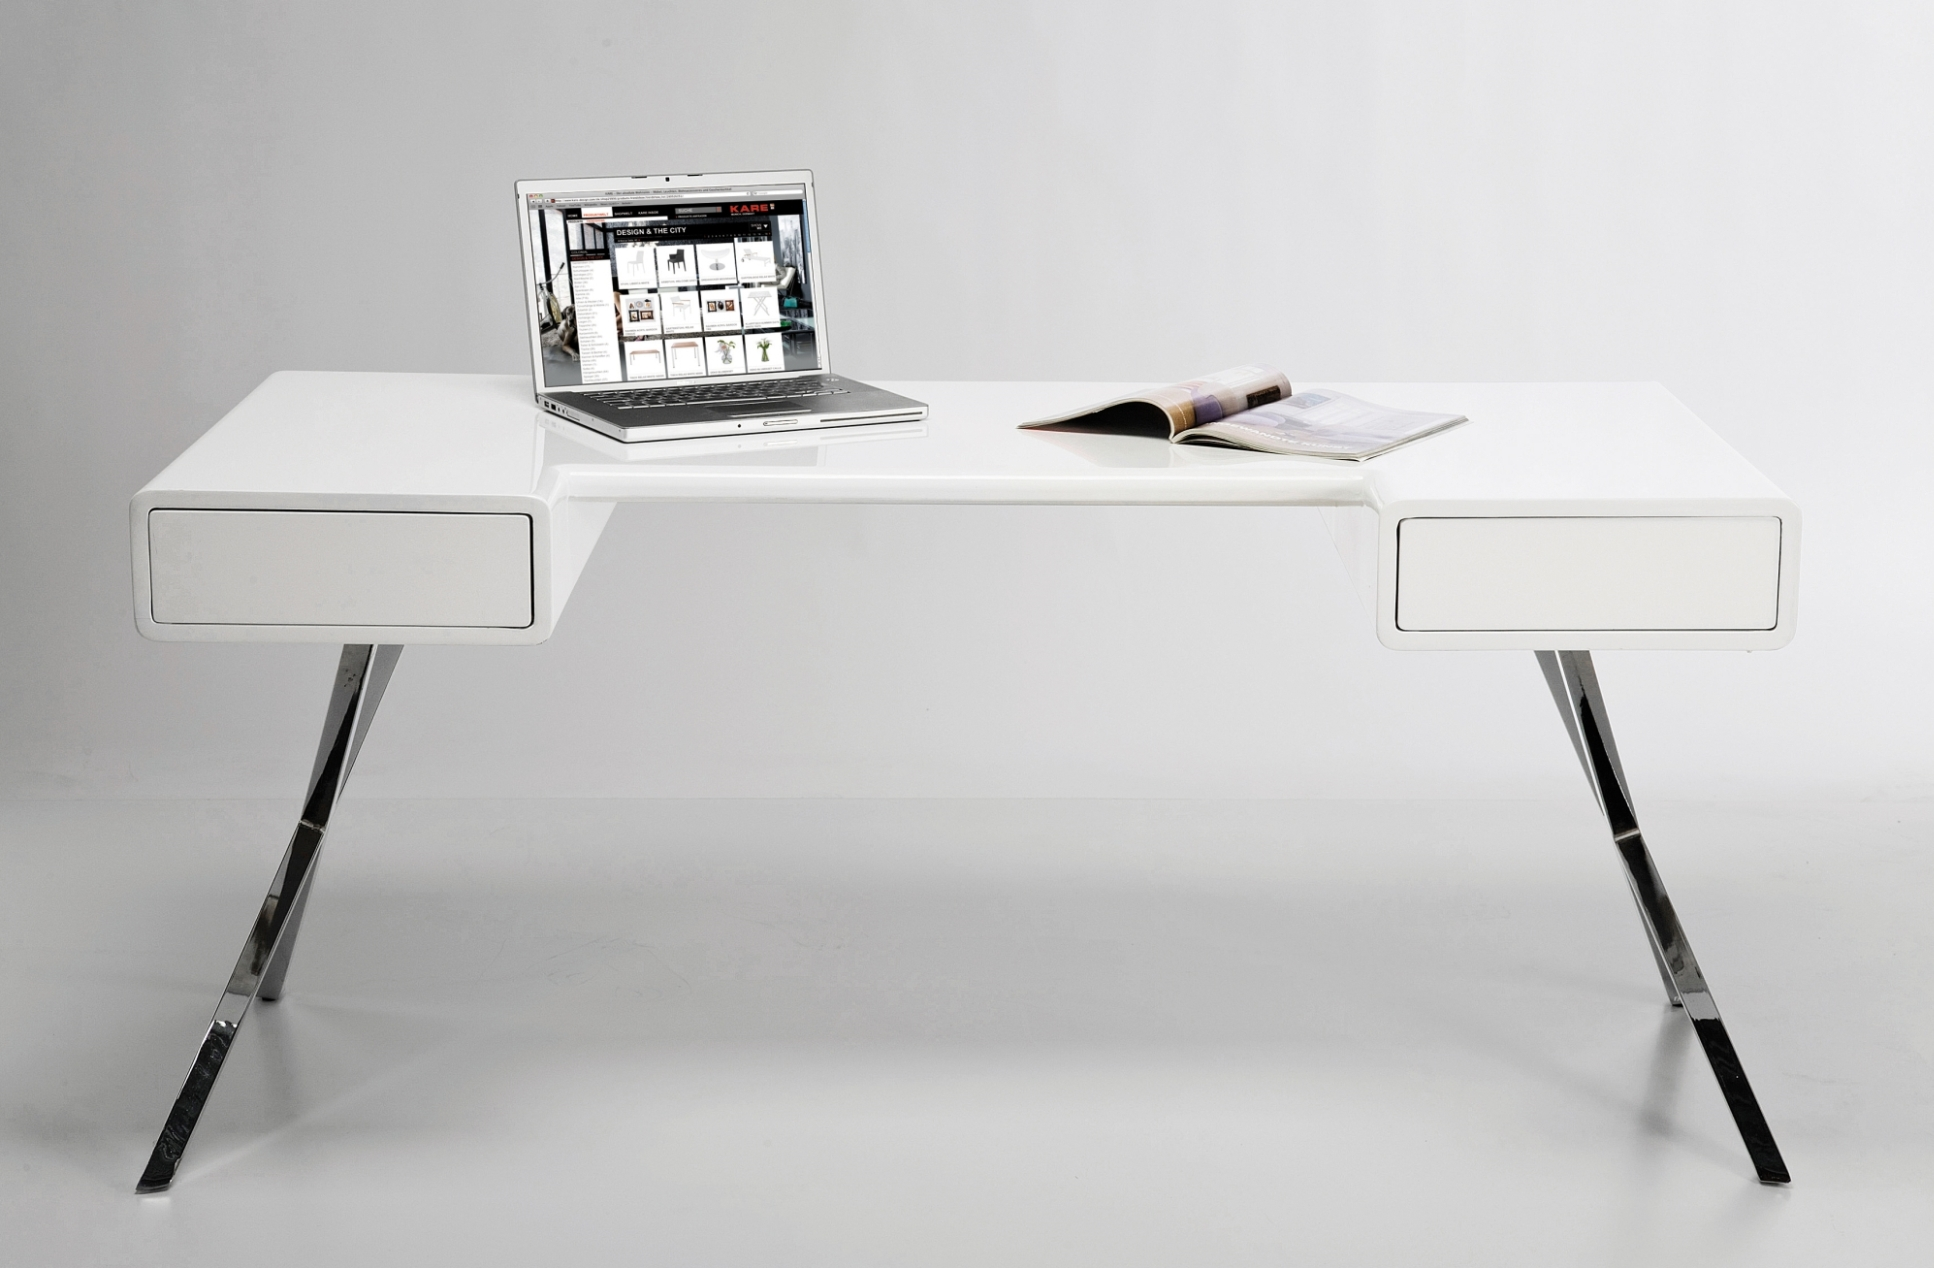 Bureau smart desk wit loftscape aanbieding kopen for Bureau kare design